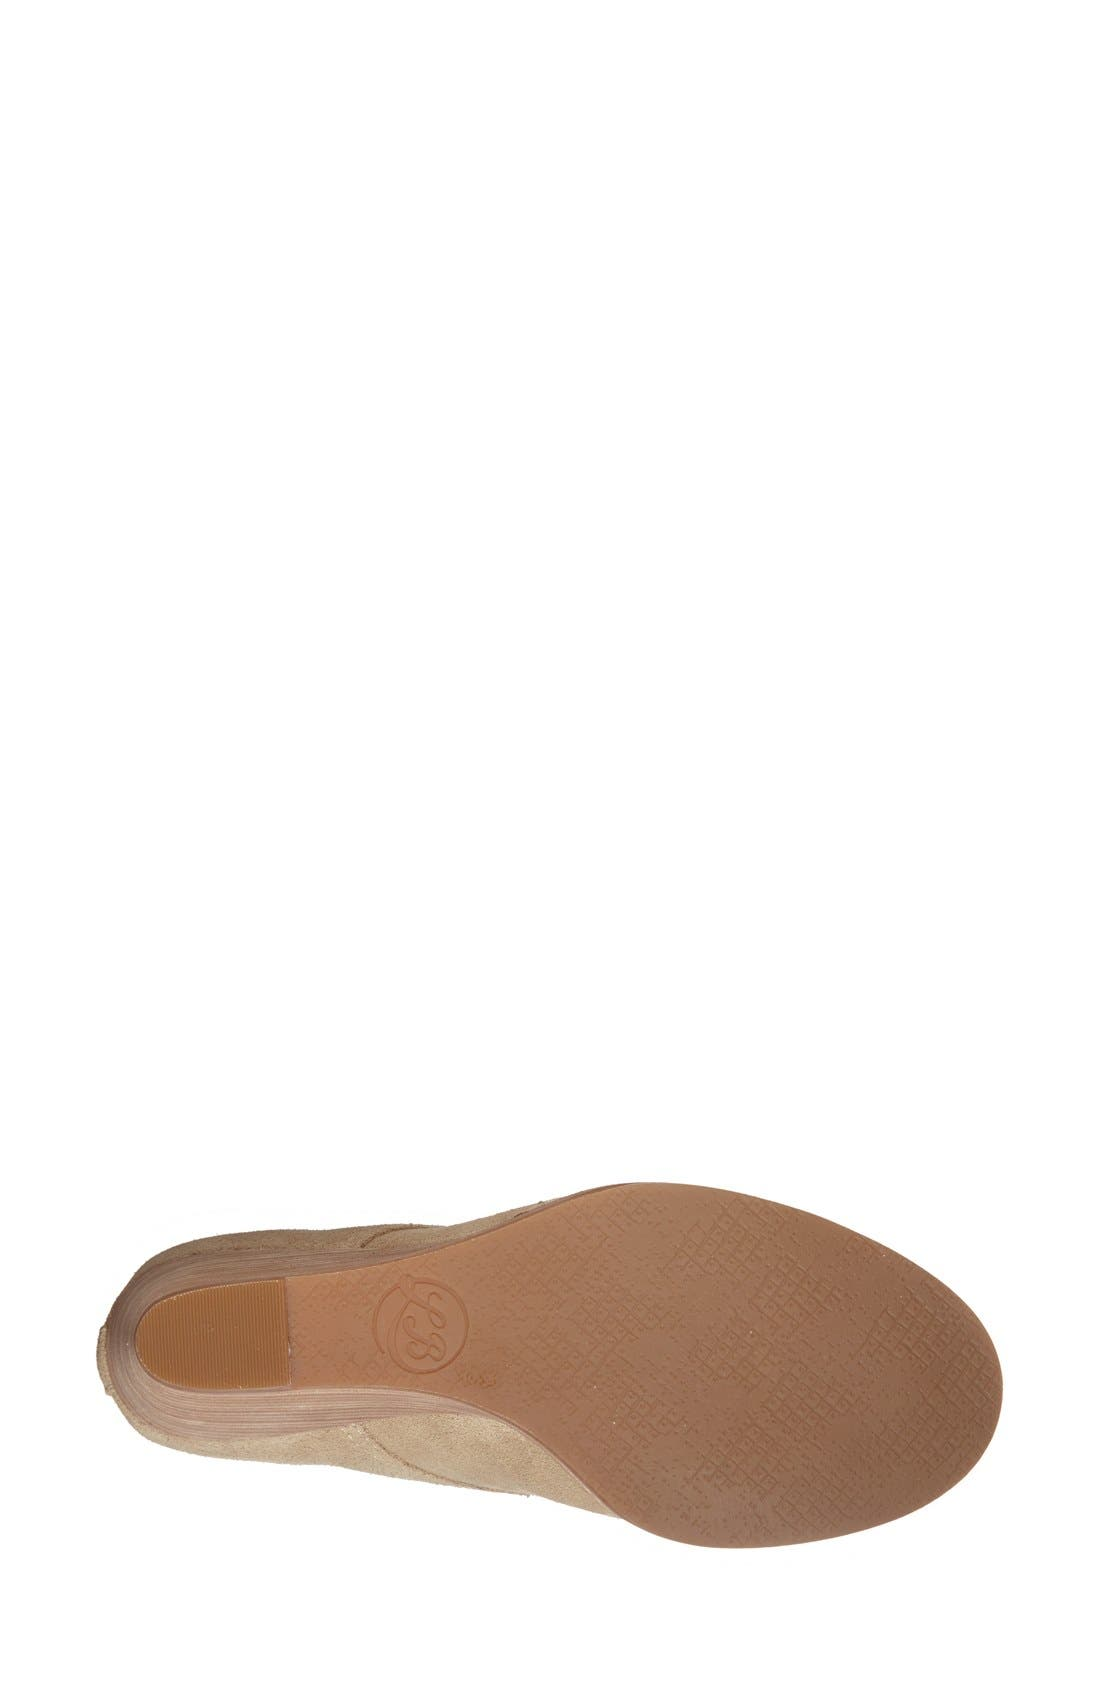 'Yoniana' Wedge Bootie,                             Alternate thumbnail 20, color,